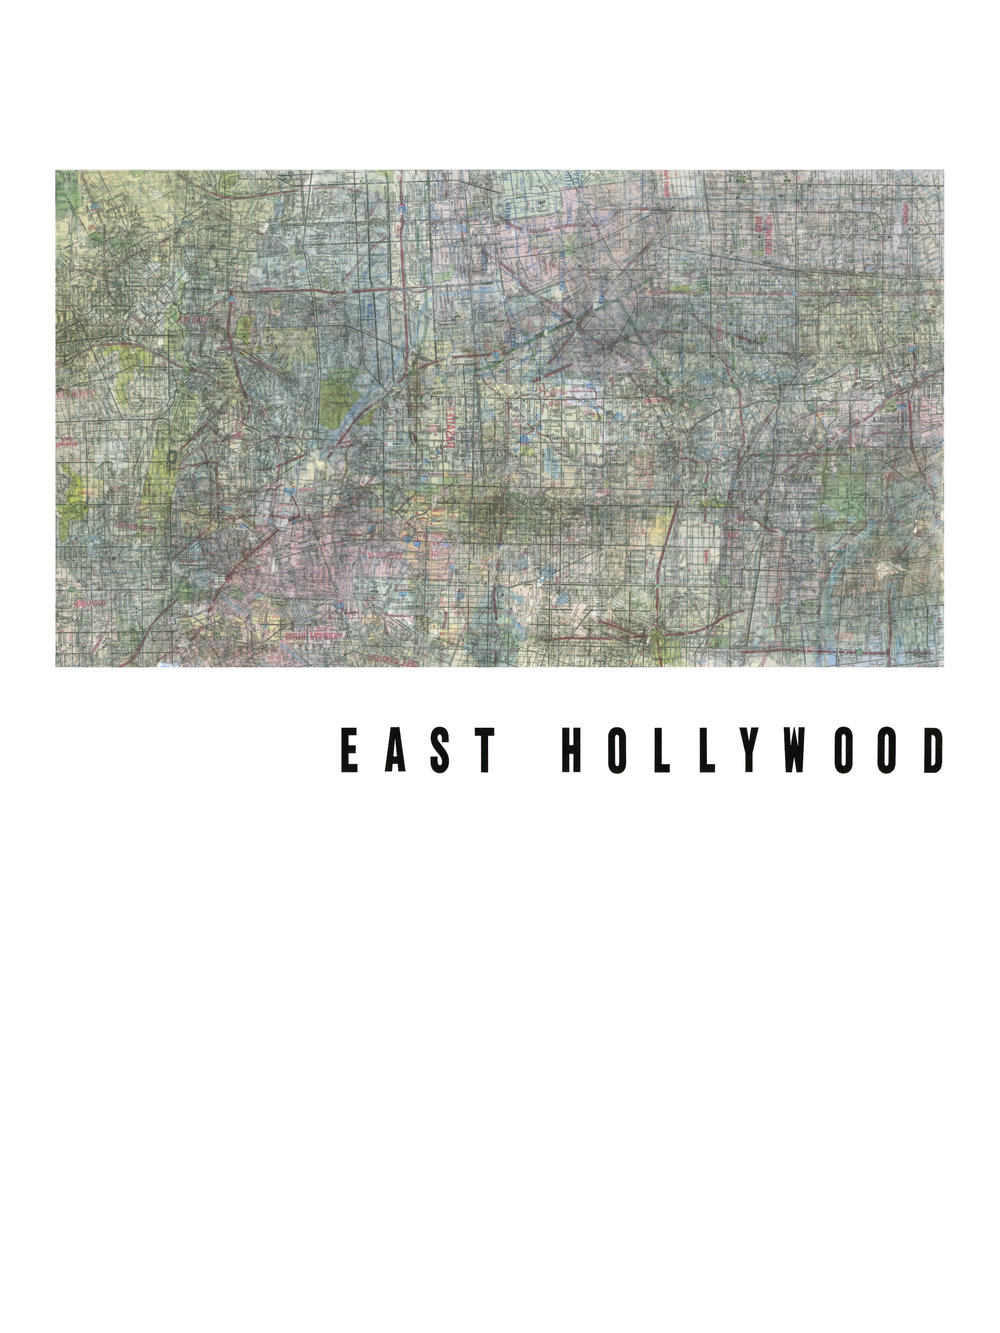 "EAST HOLLYWOOD Road maps and vinyl letters on paper. 2016. 18 x 24""."